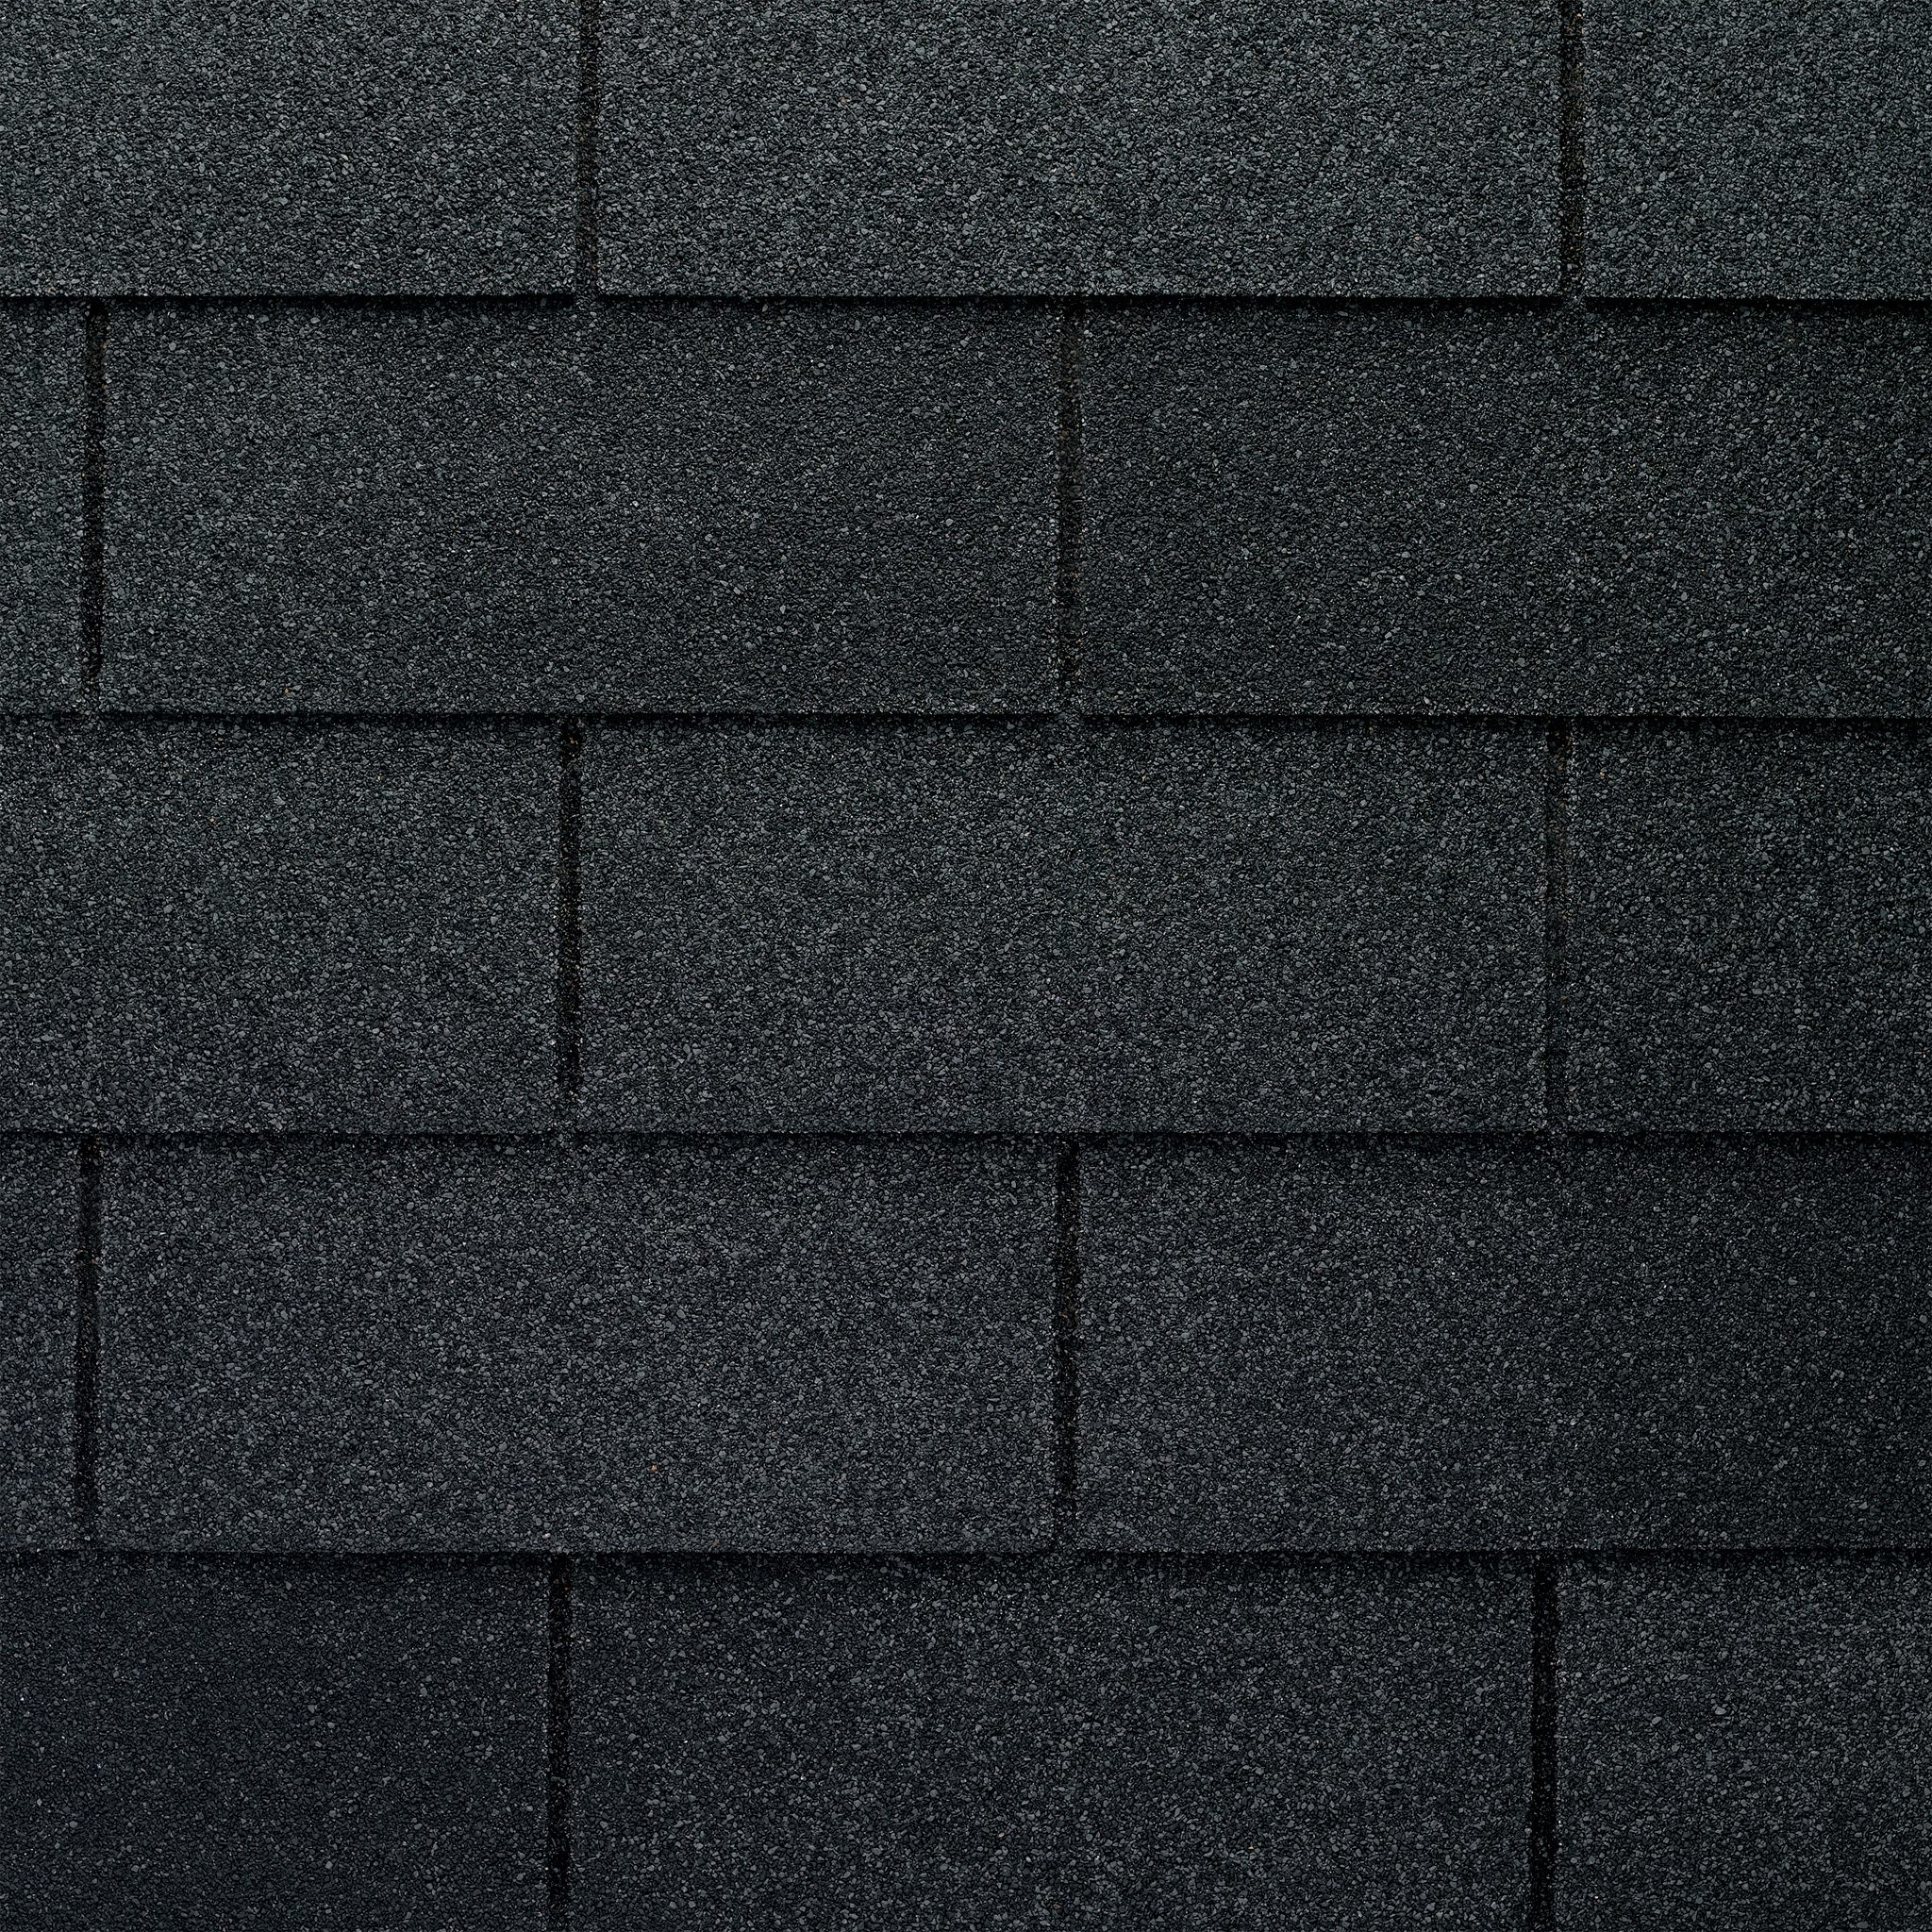 Close up photo of GAF's Marquis WeatherMax Charcoal shingle swatch